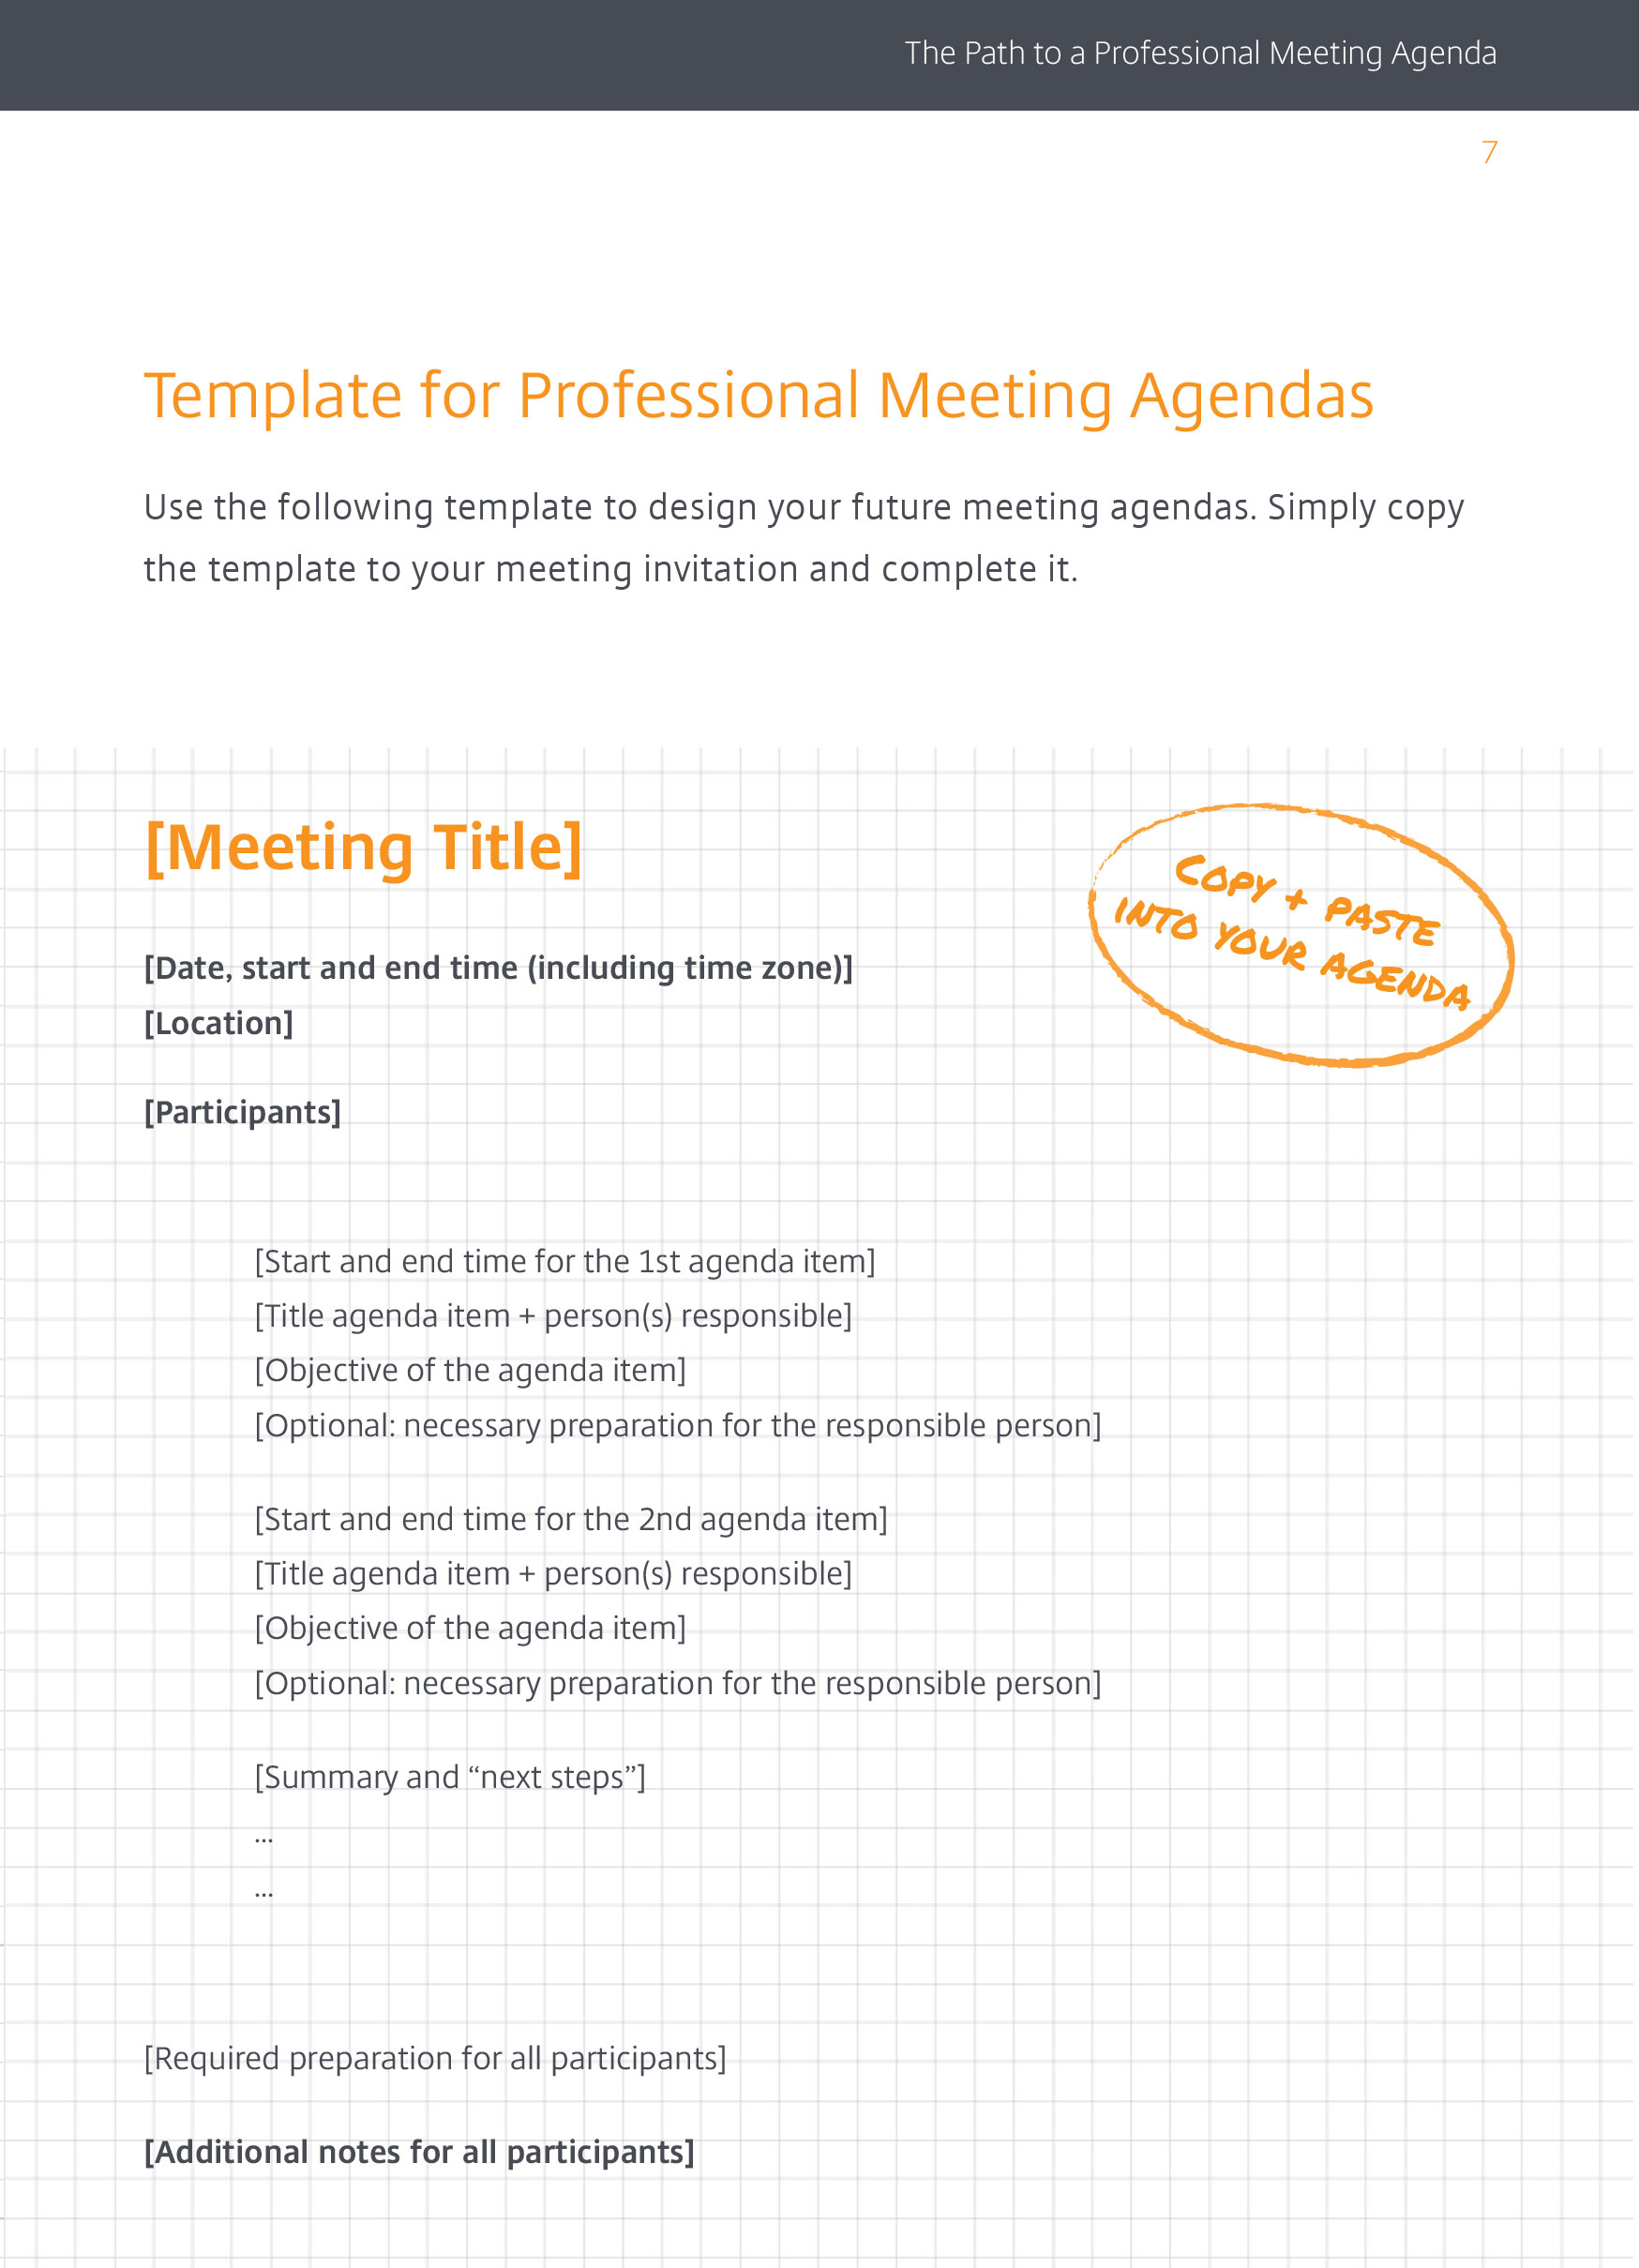 create a professional meeting agenda meeting agenda template professional meeting agenda template template